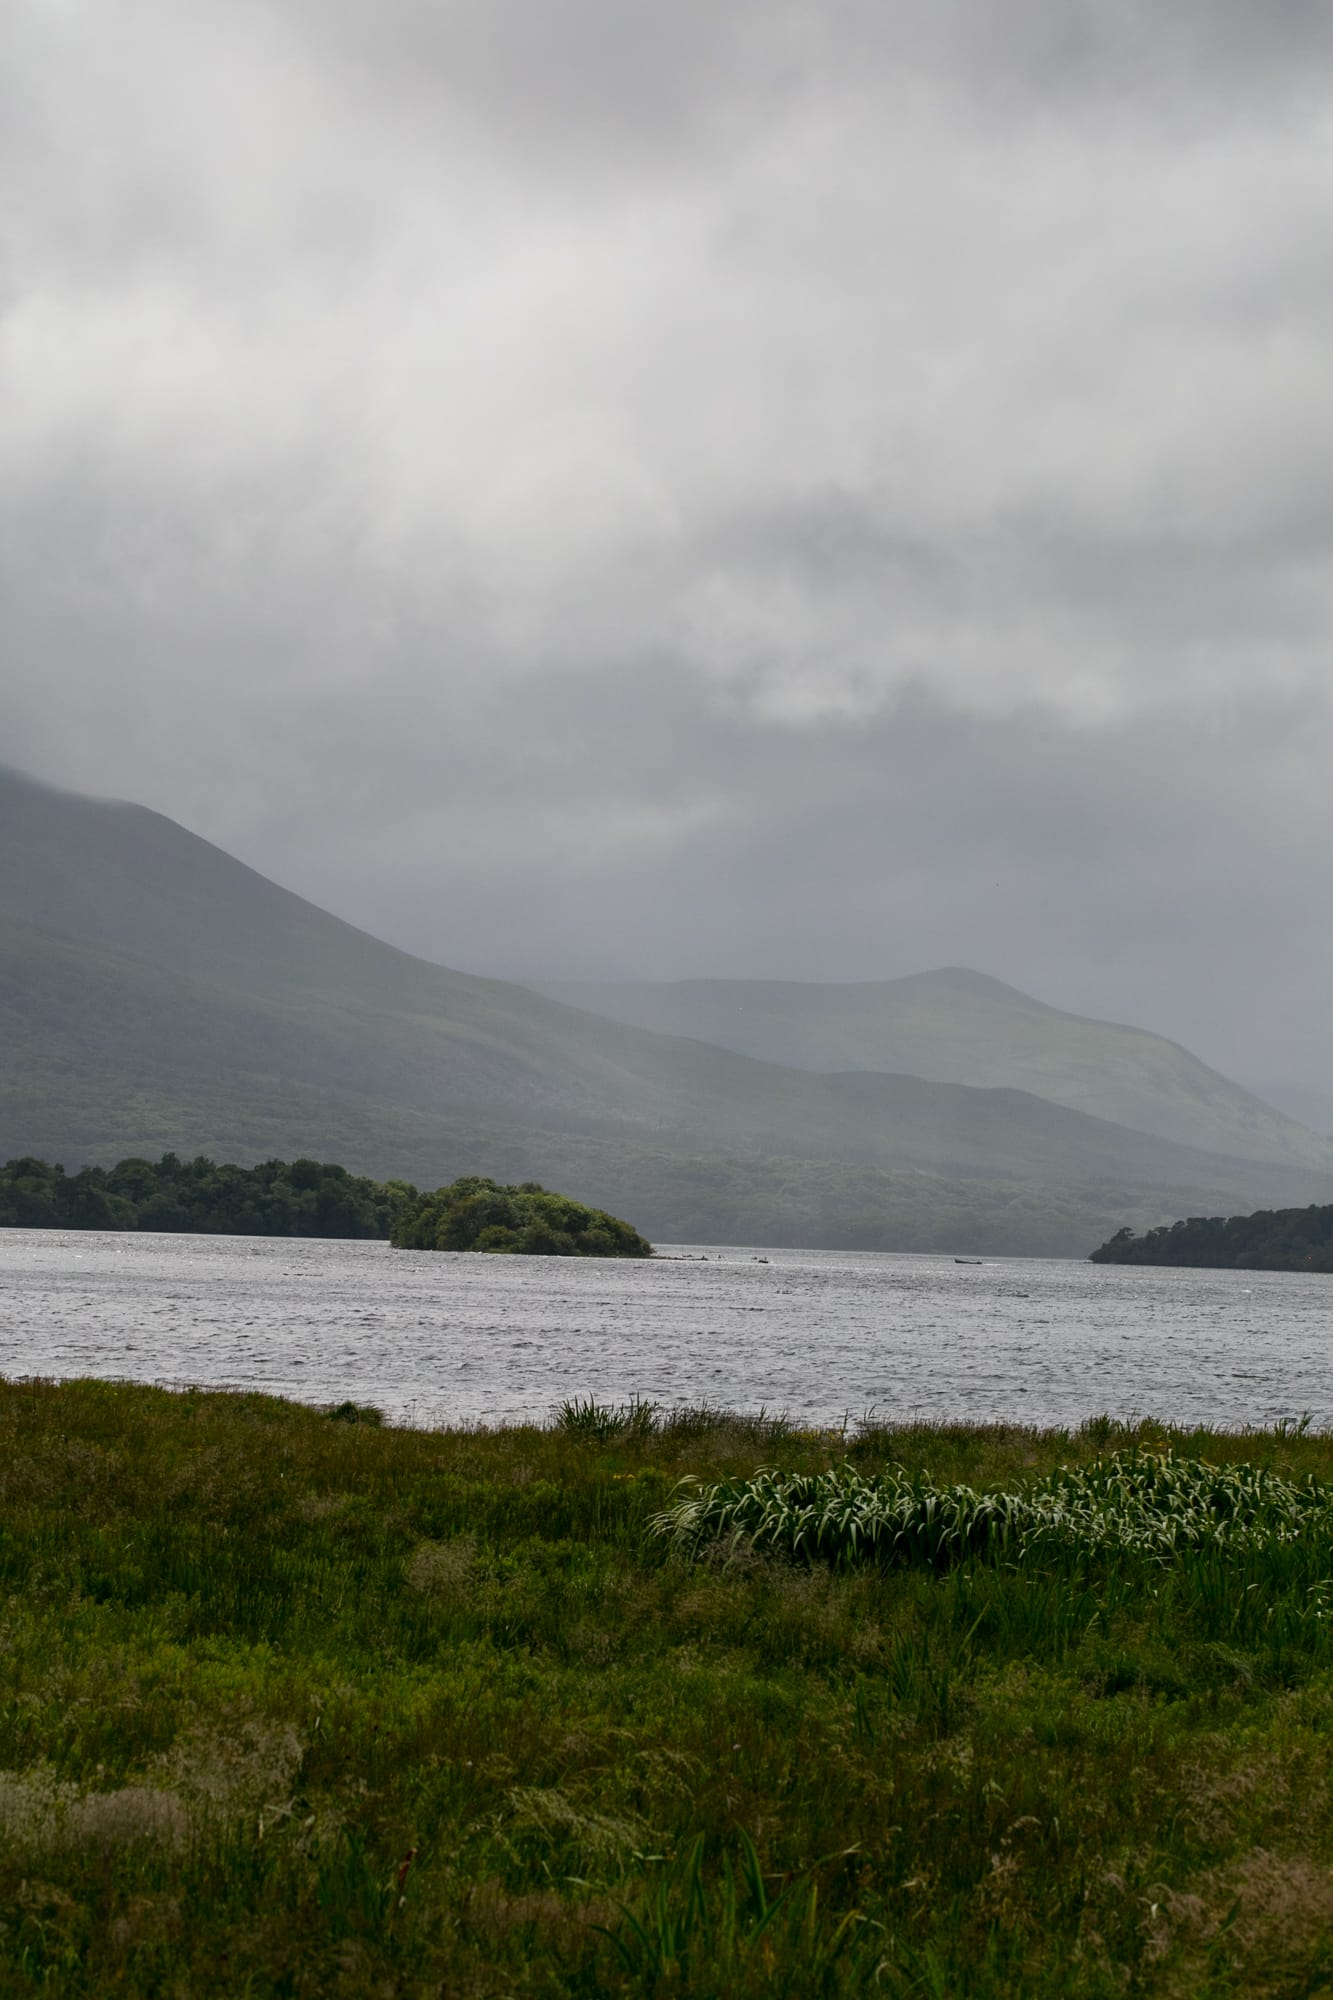 Loch Lein, Killarney National Park